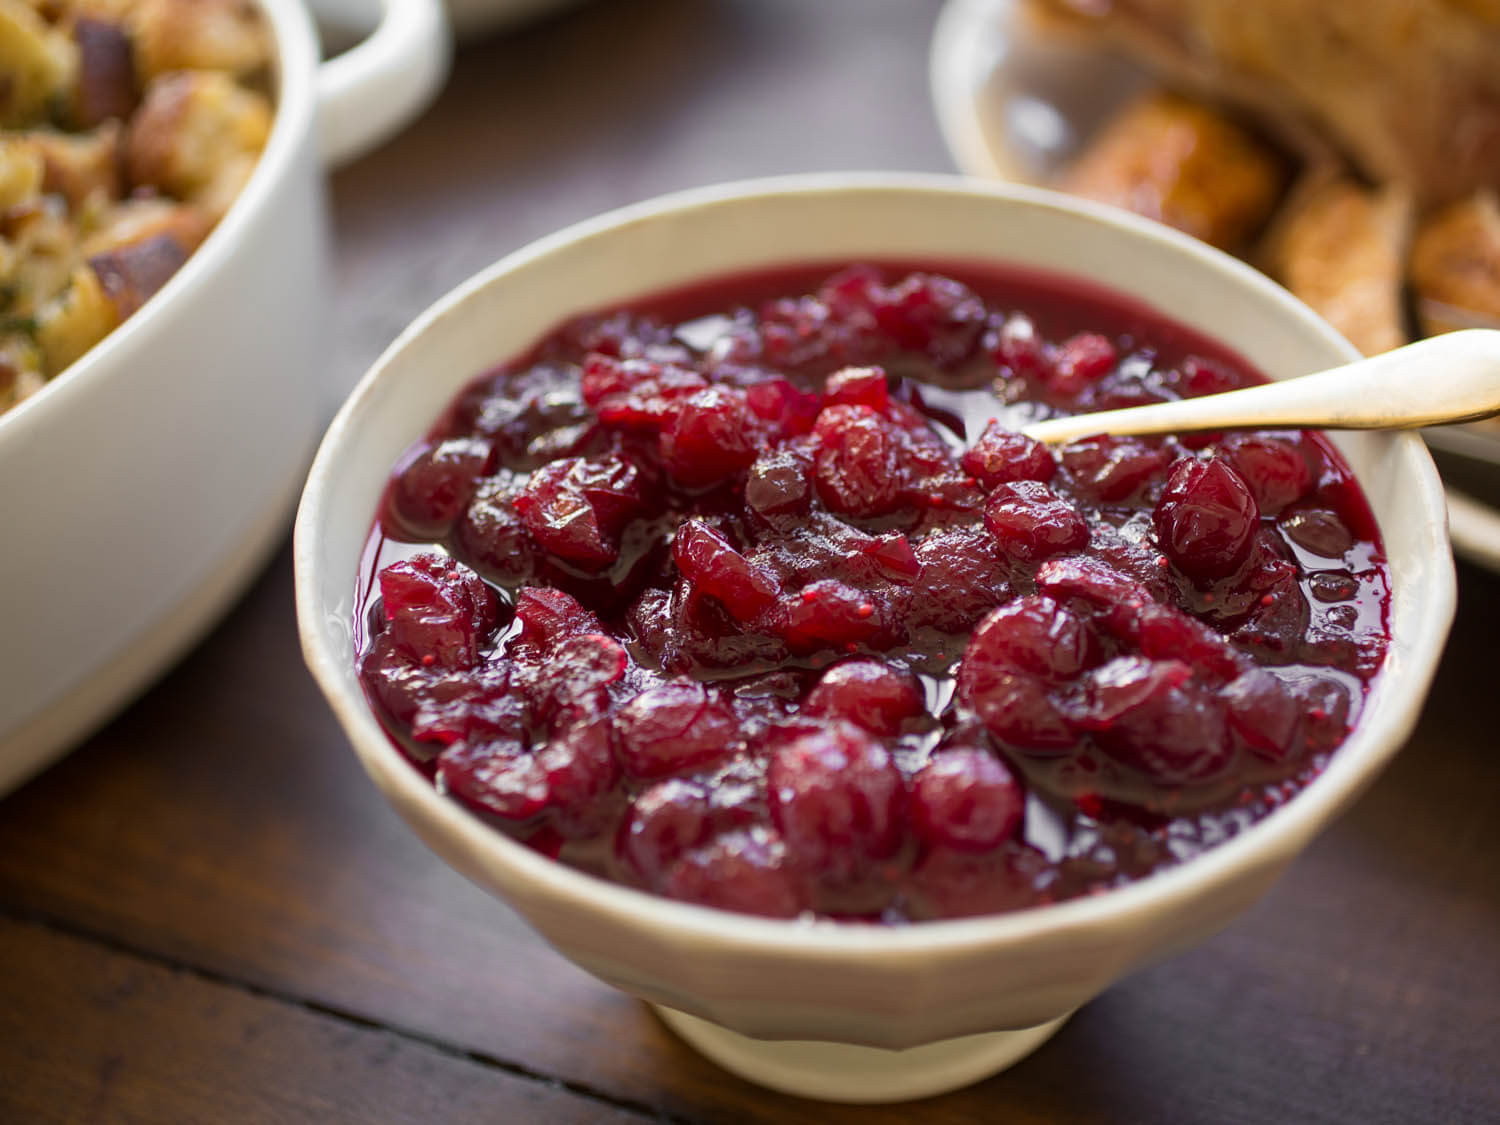 Cranberry Sauce Recipes For Thanksgiving  Thanksgiving Cranberry Sauce Recipes